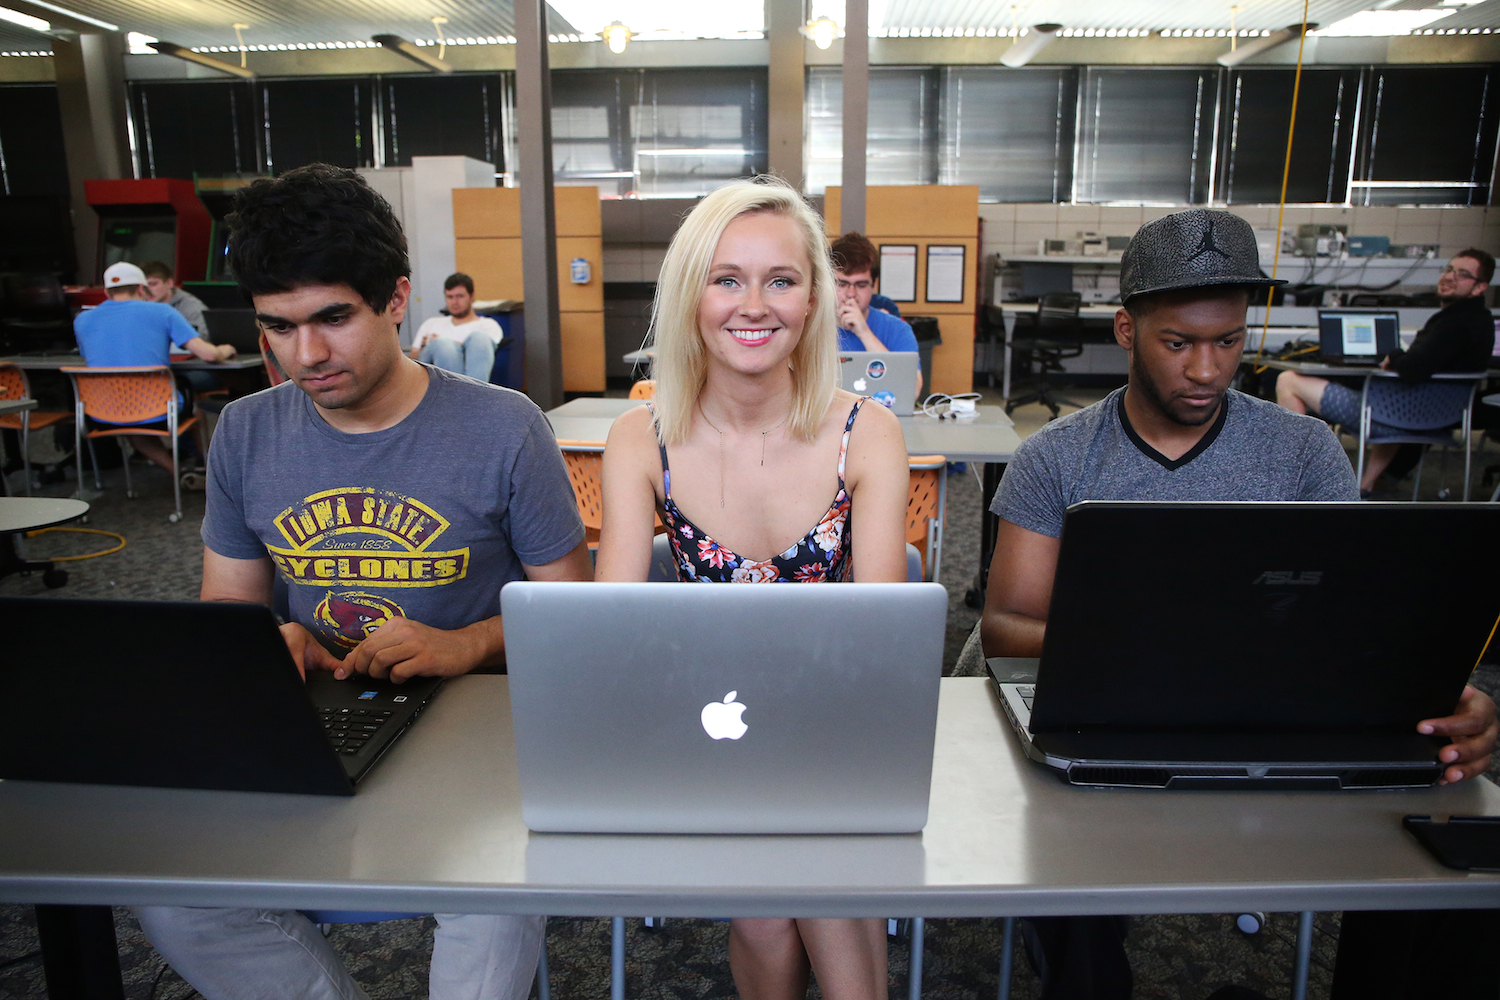 Kelsey Hrubes sits at her mac laptop between two men on their laptops.